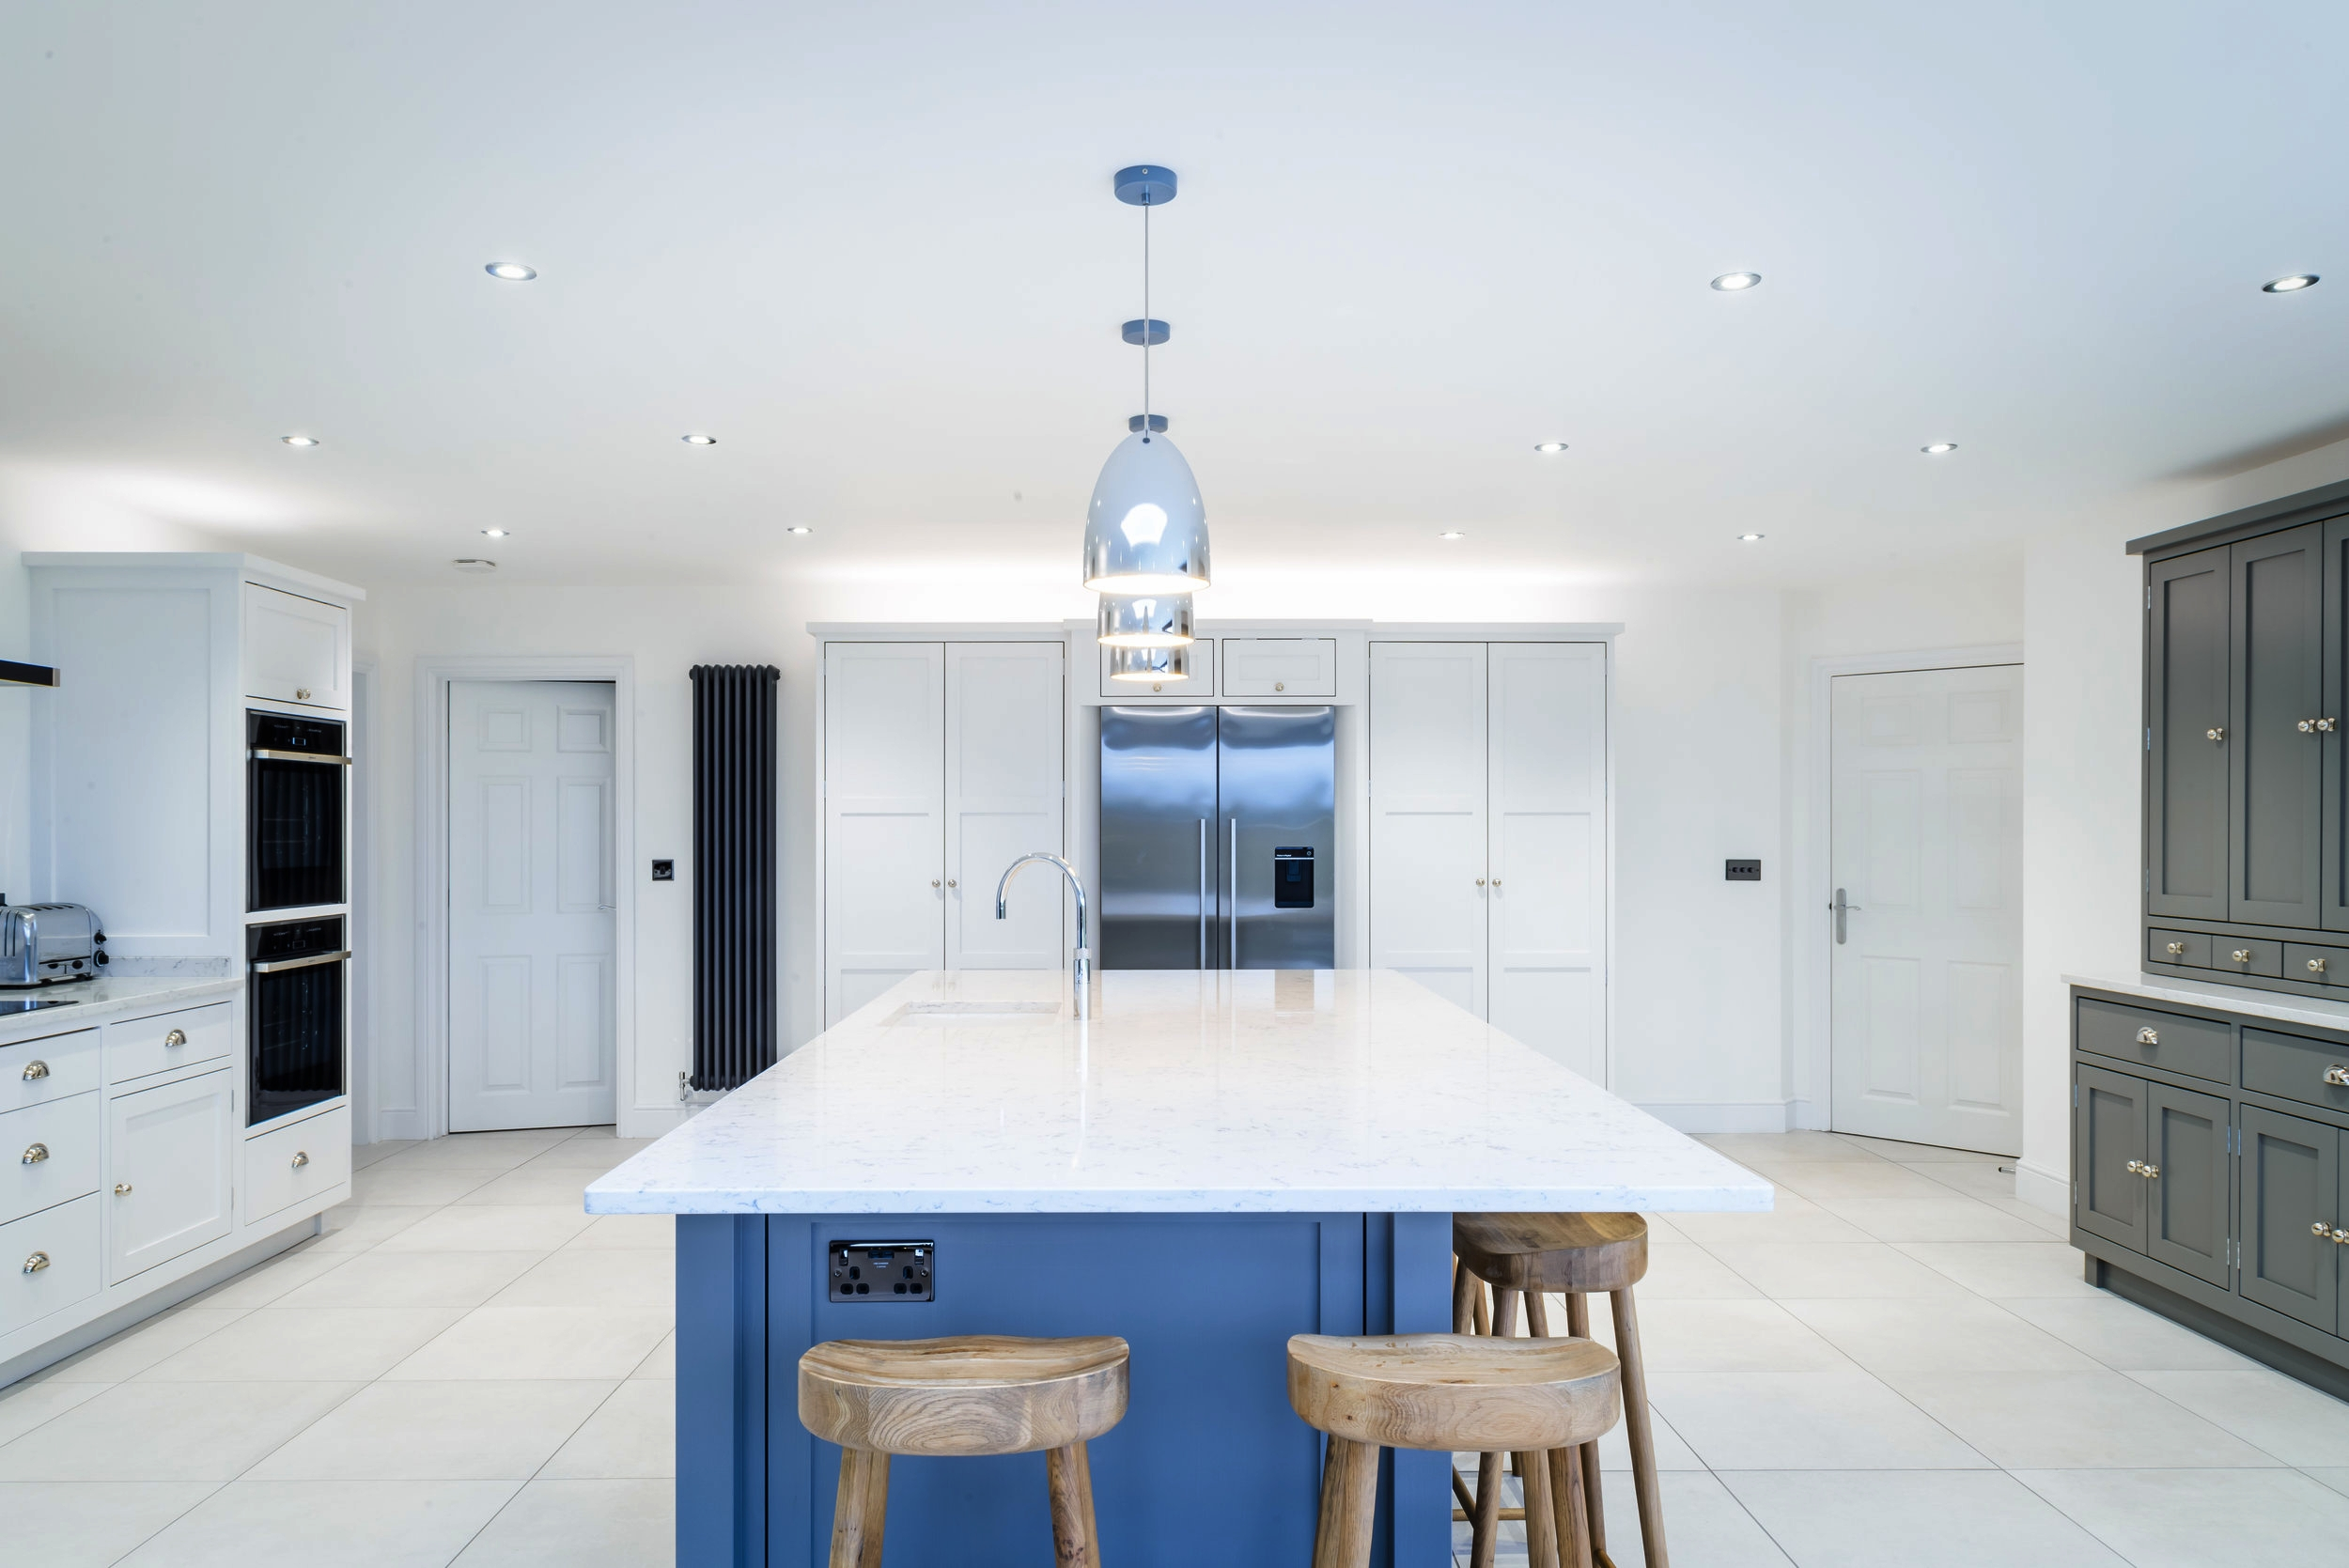 bespoke Open Space Kitchen.jpg